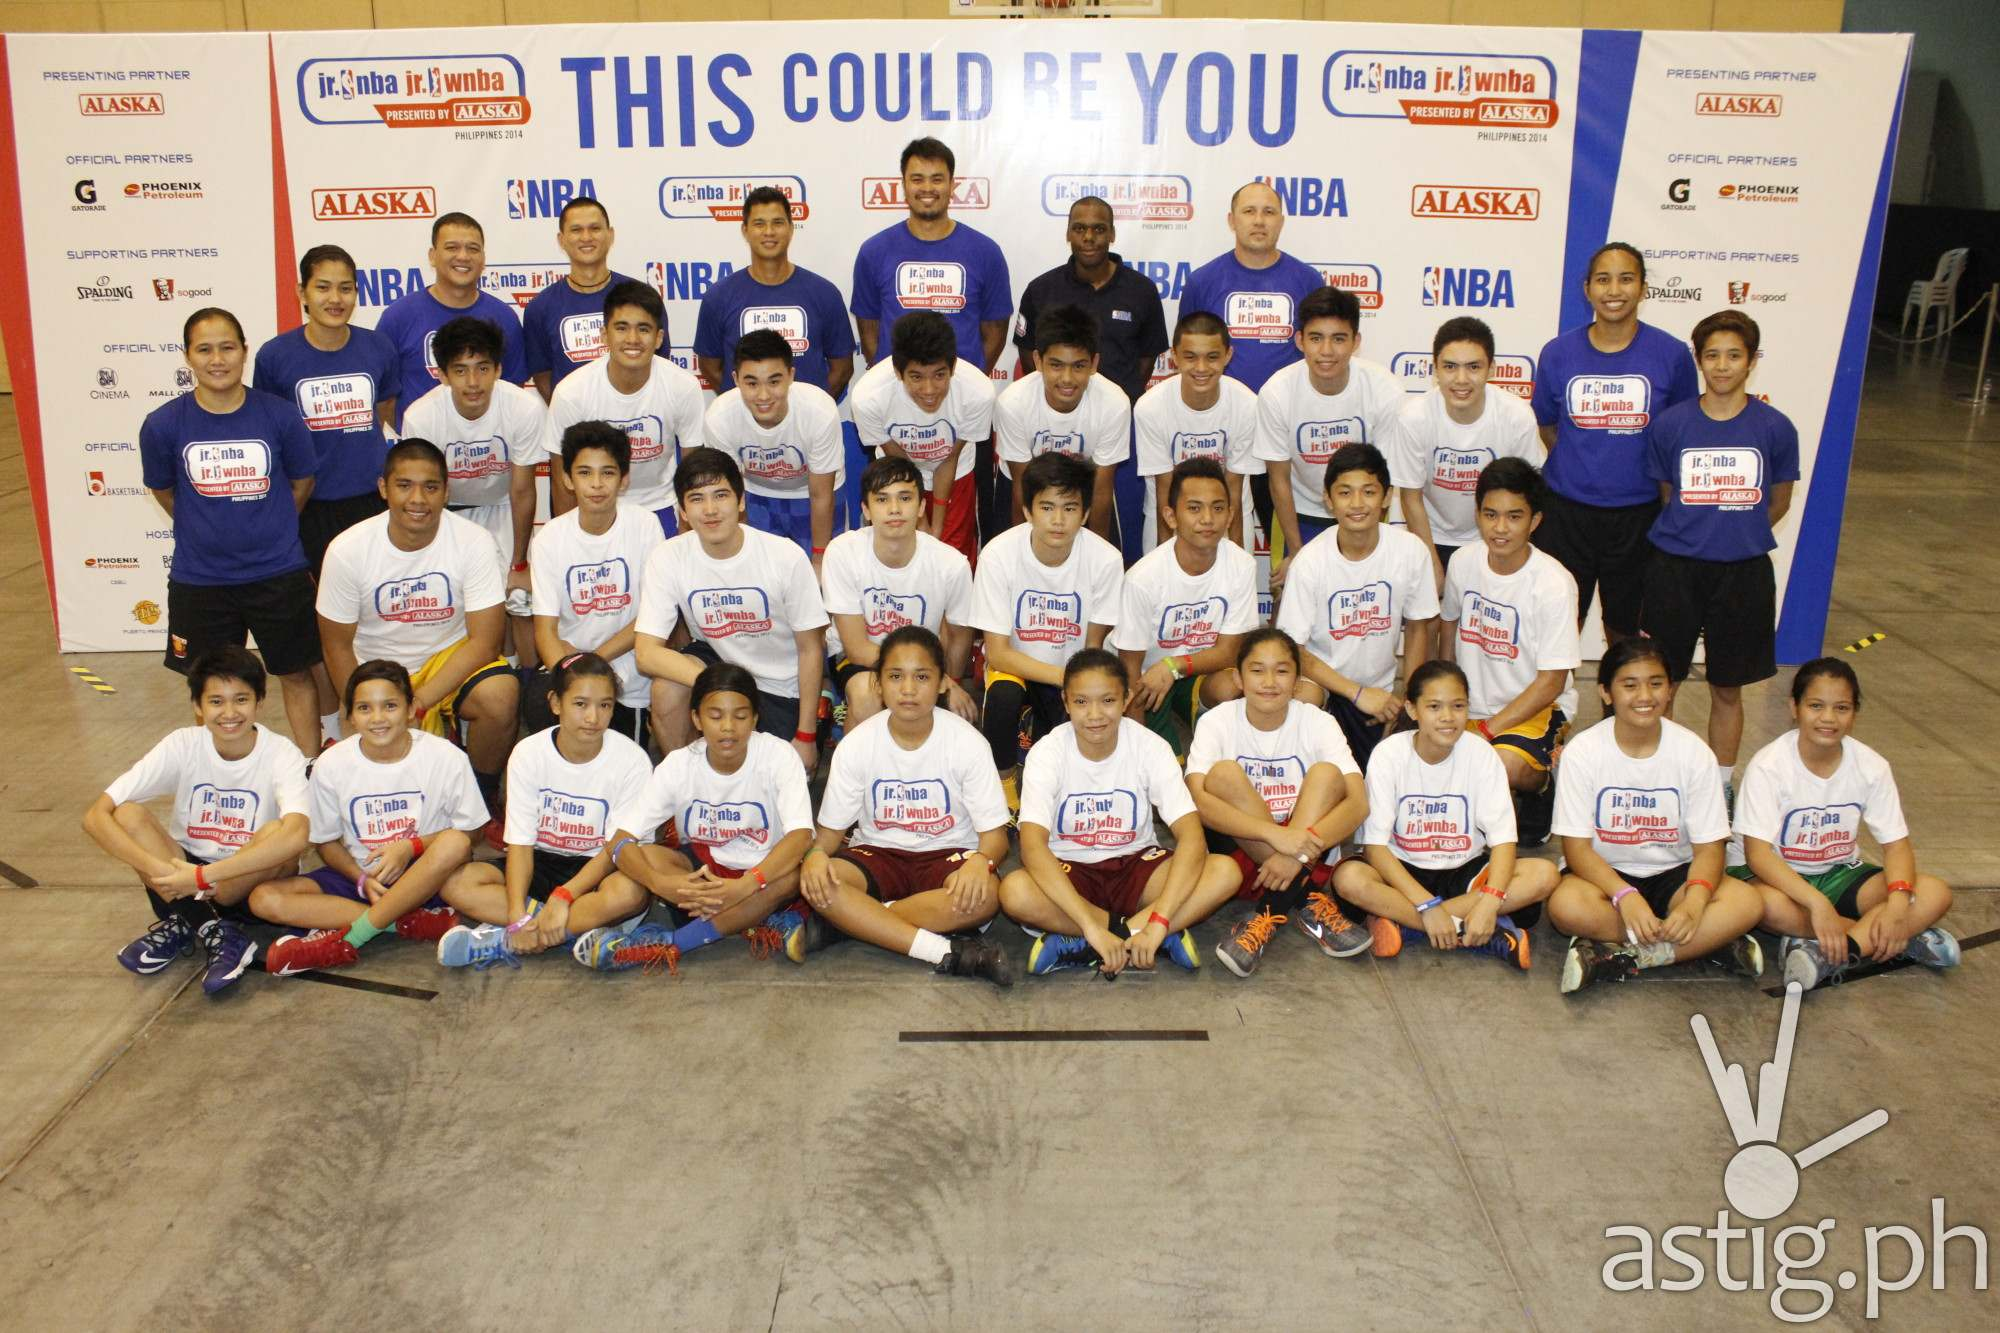 The 16 boys and 10 girls who made it to the National Training Camp of Jr. NBA/Jr. WNBA Philippines 2014 presented by Alaska with their coaches led by Jr. NBA Coach Chris Sumner (fourth from right) and Alaska coach Jojo Lastimosa (fifth from left).